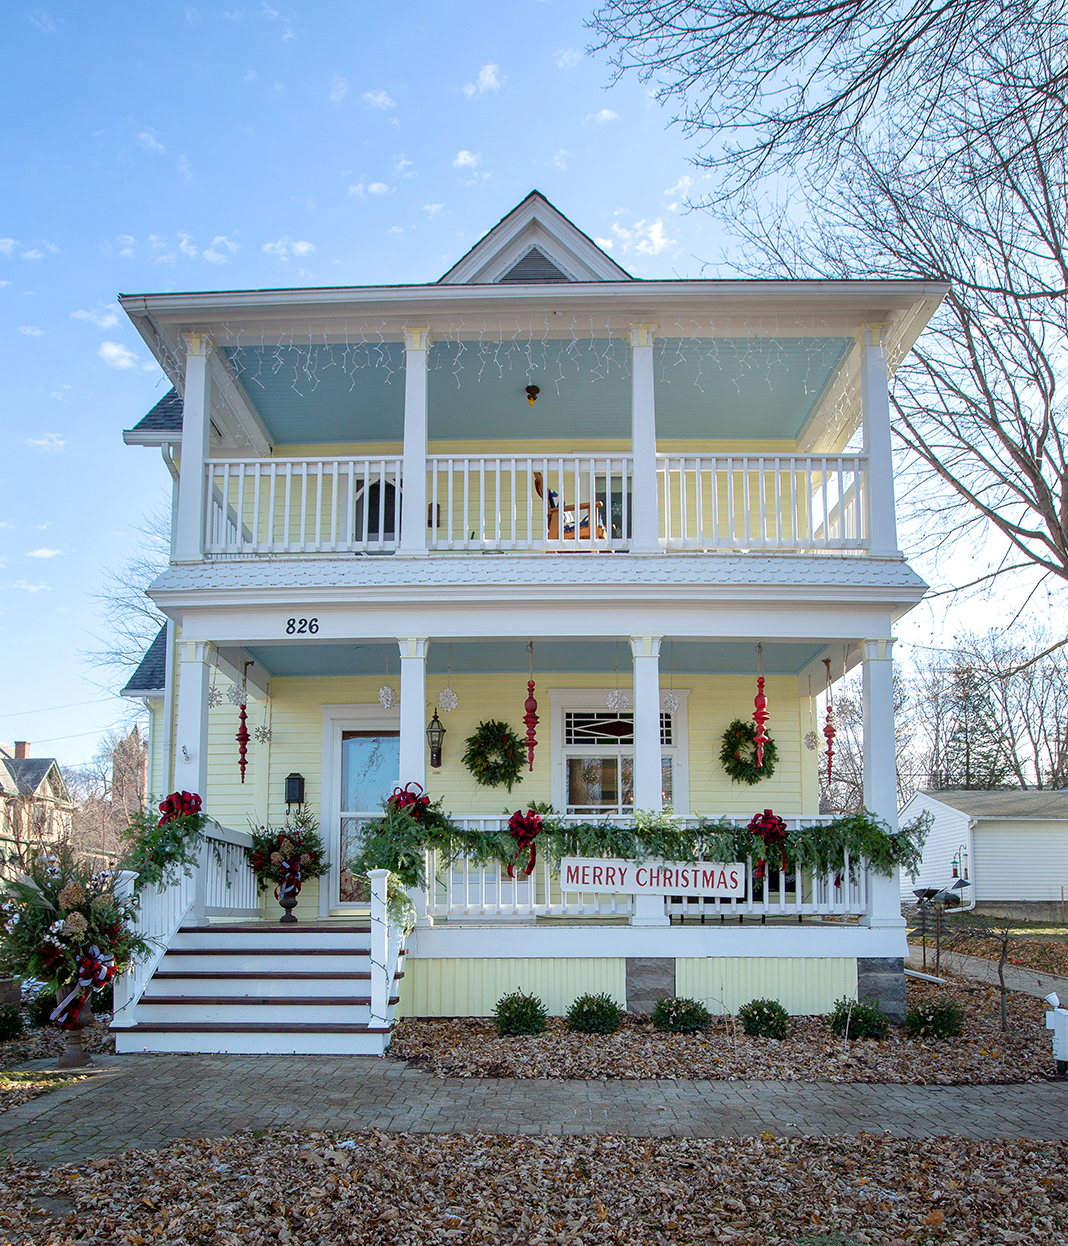 A two-story light yellow home decorated with holiday garland and wreaths.